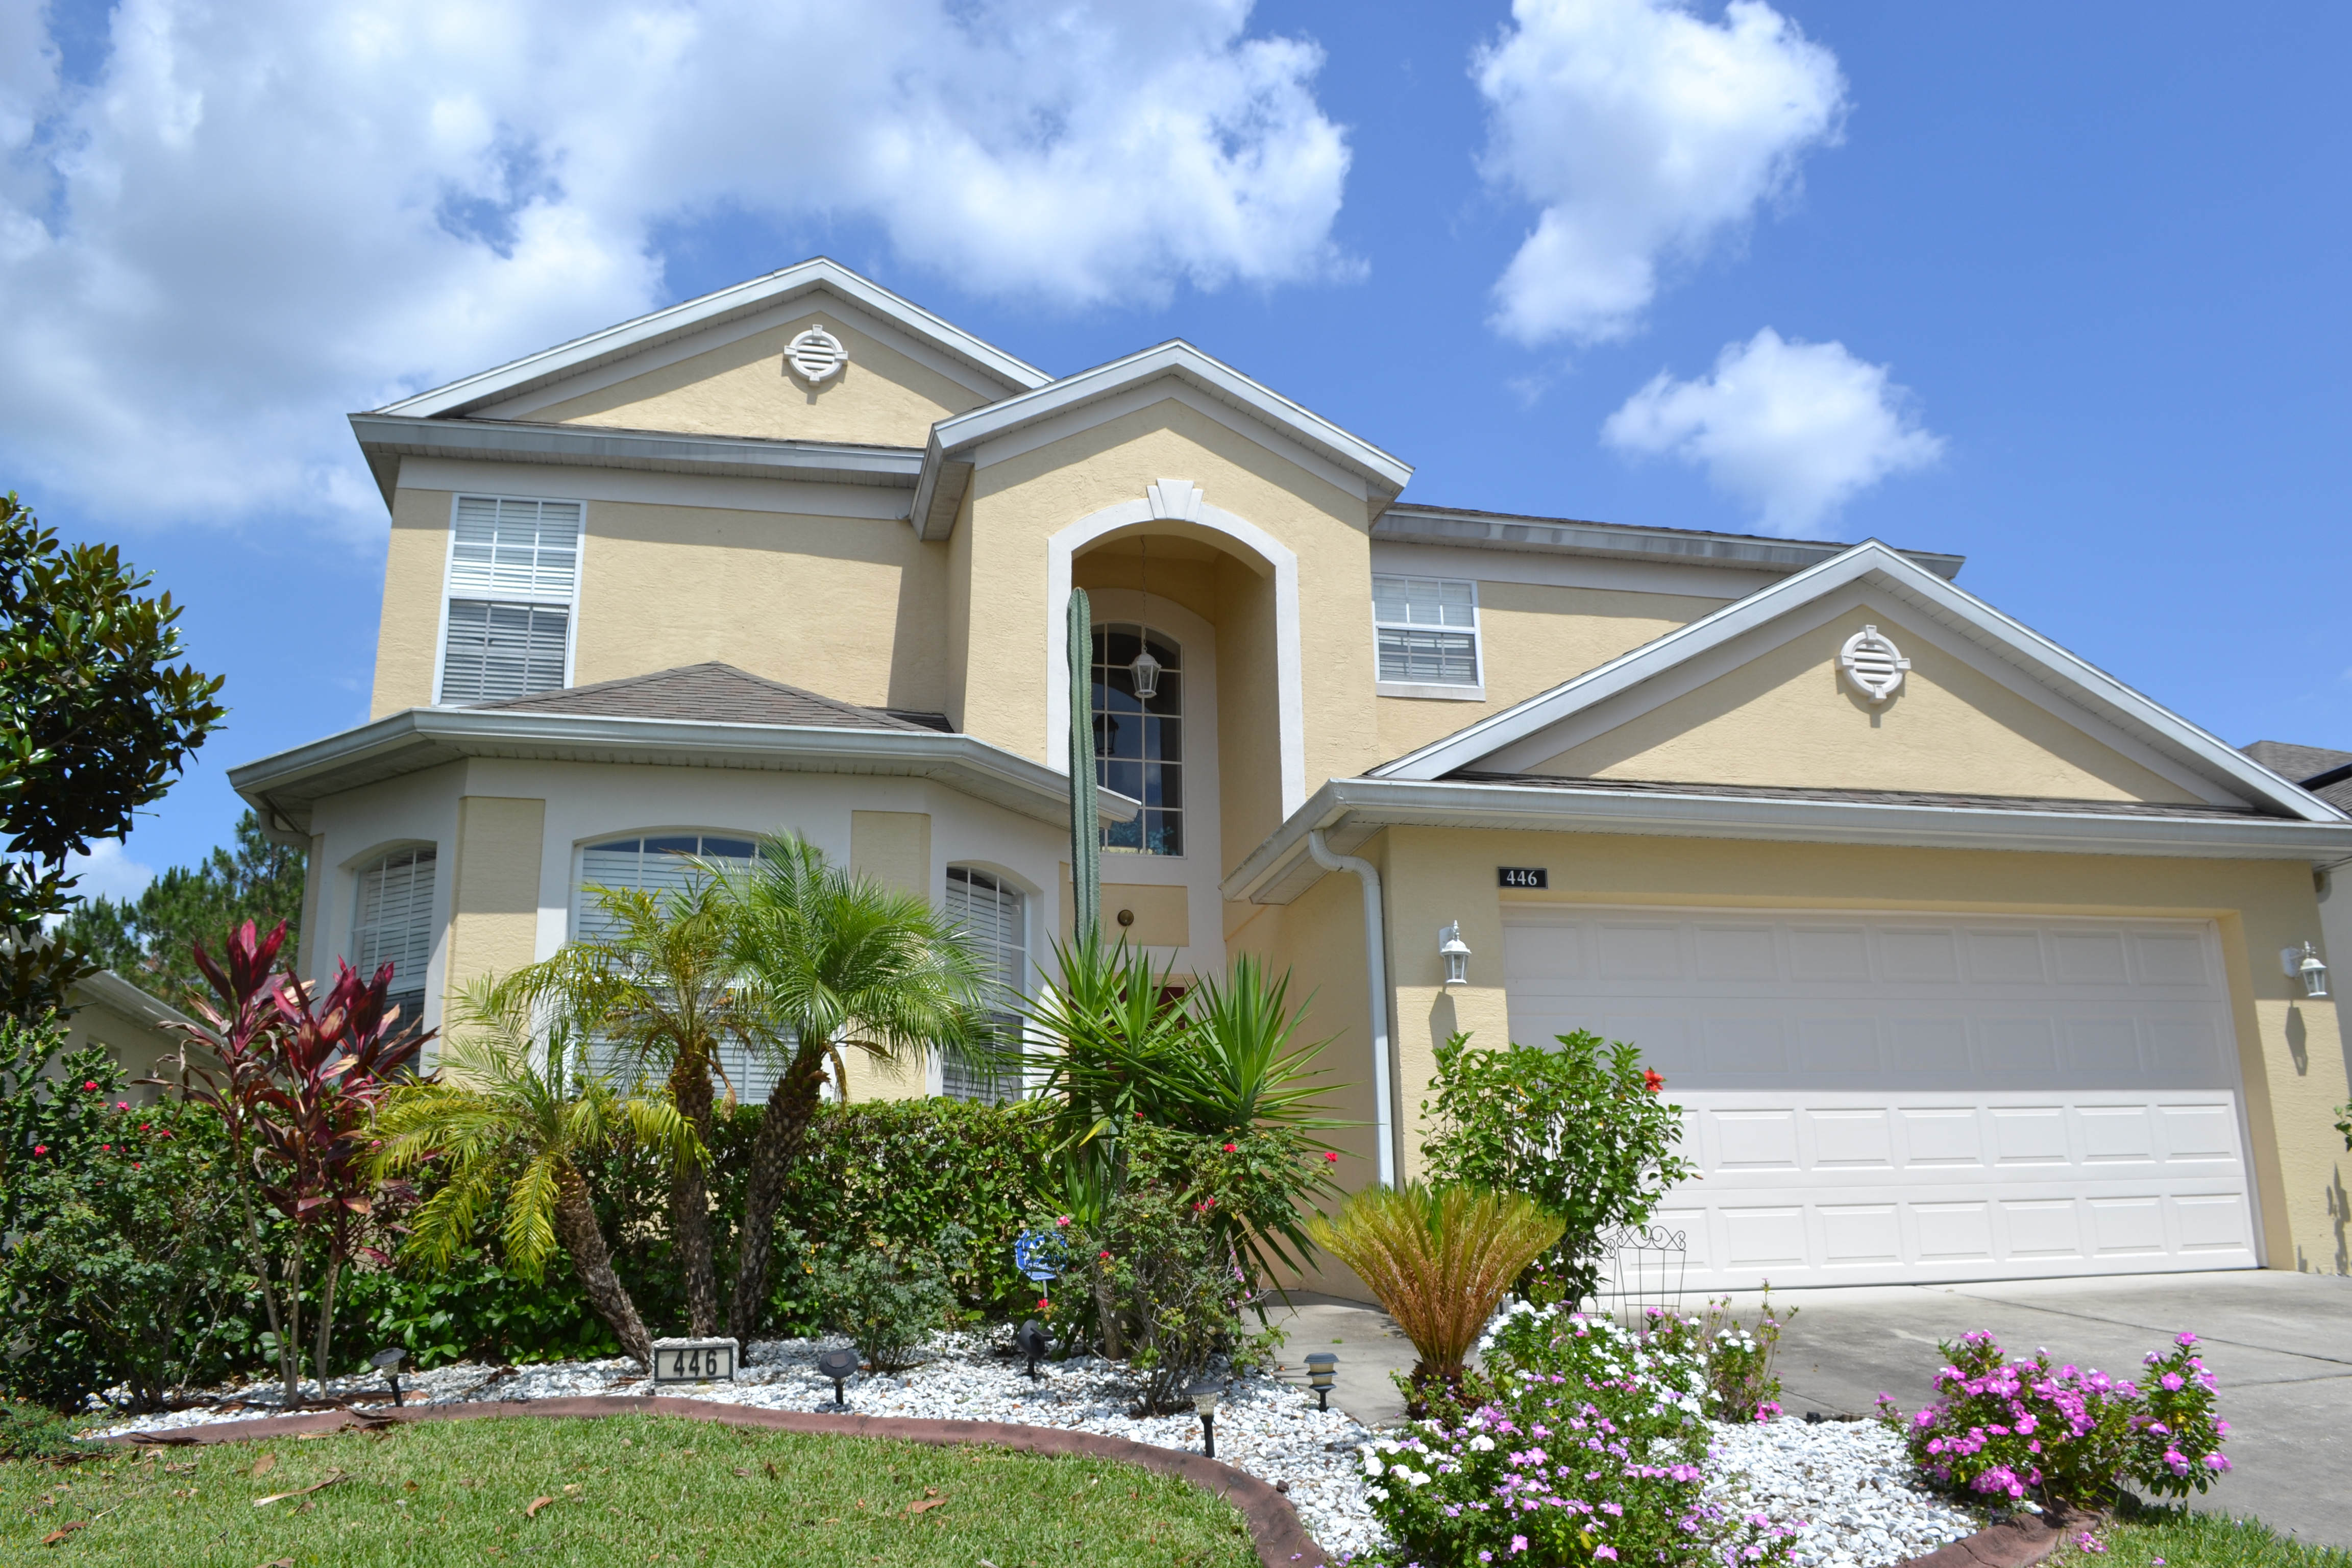 Rent a villa in Orlando - we have plenty of luxury villas to choose from